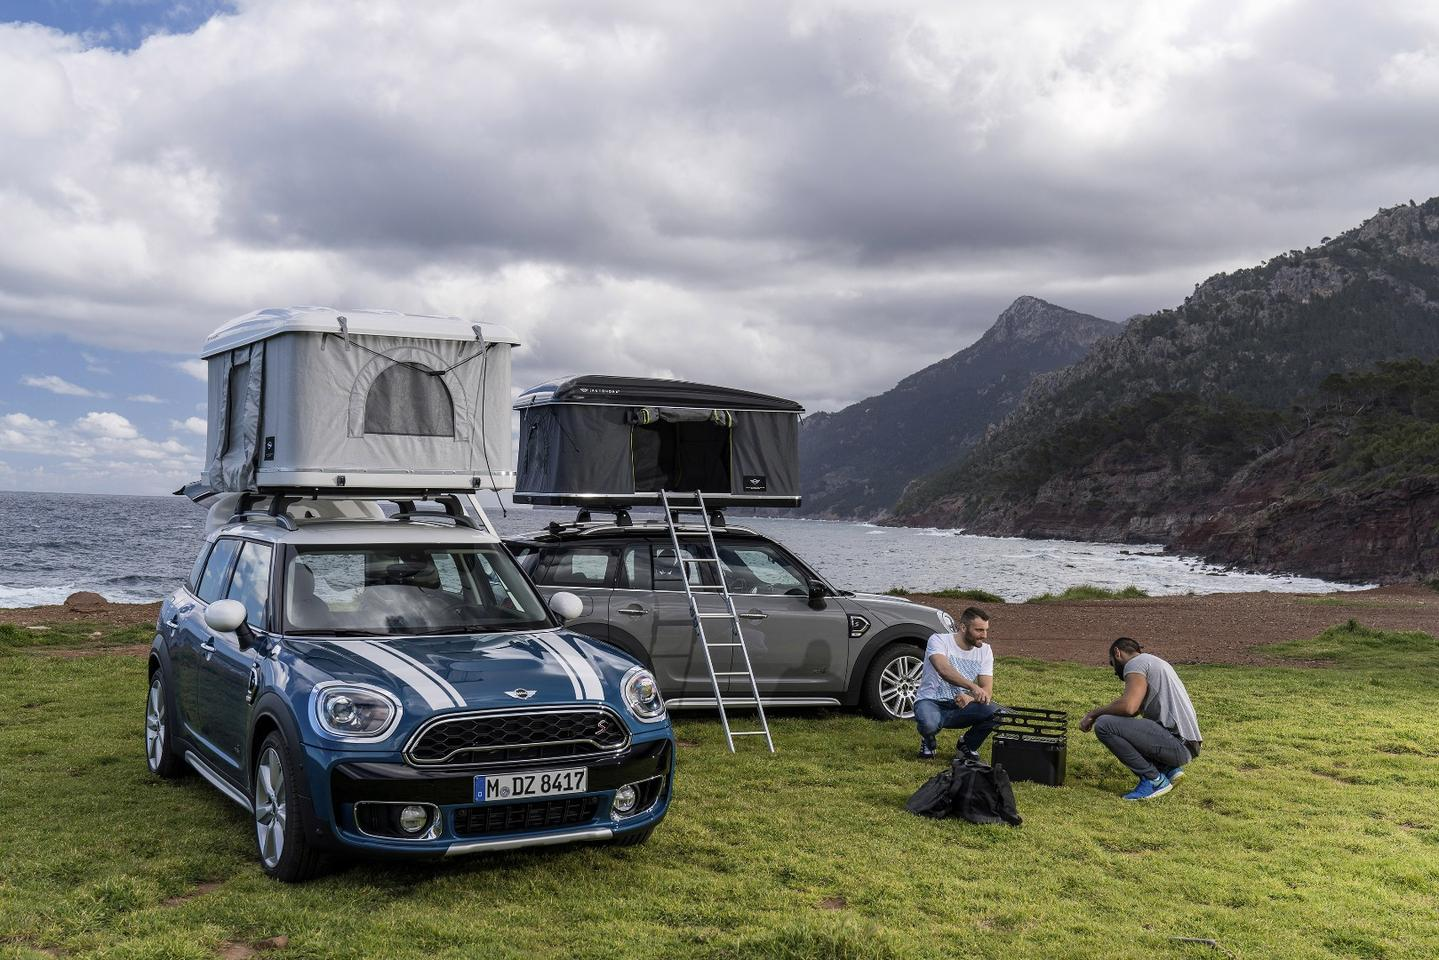 The new AirTop roof tent specifically designed for the Mini Countryman